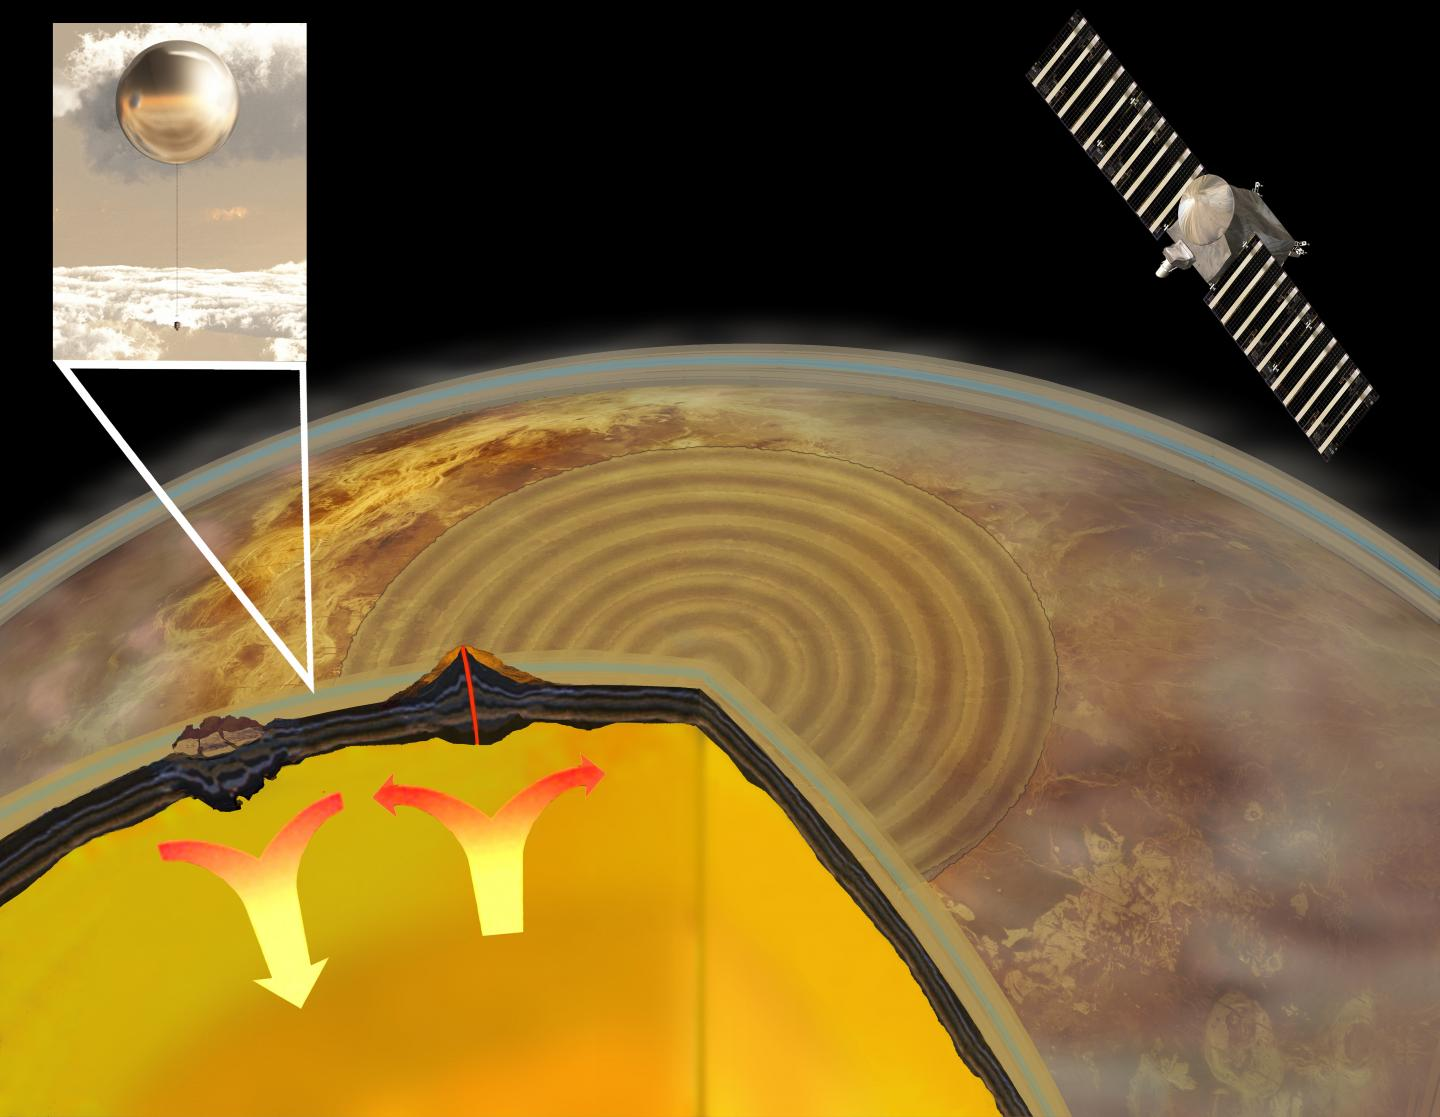 Sound may detect earthquakes on Venus